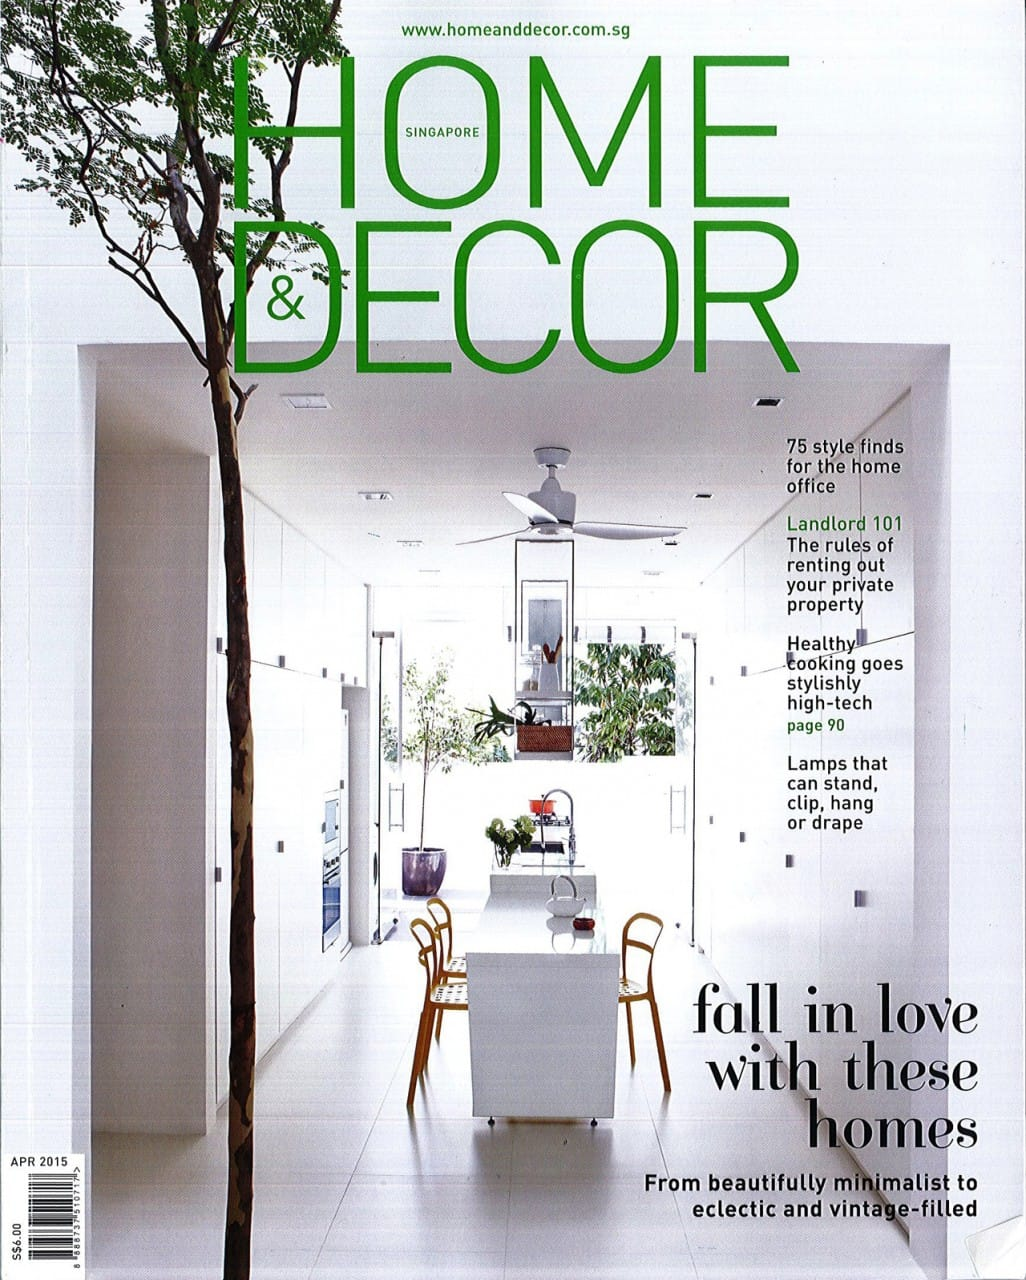 Home & Decor - April 2015